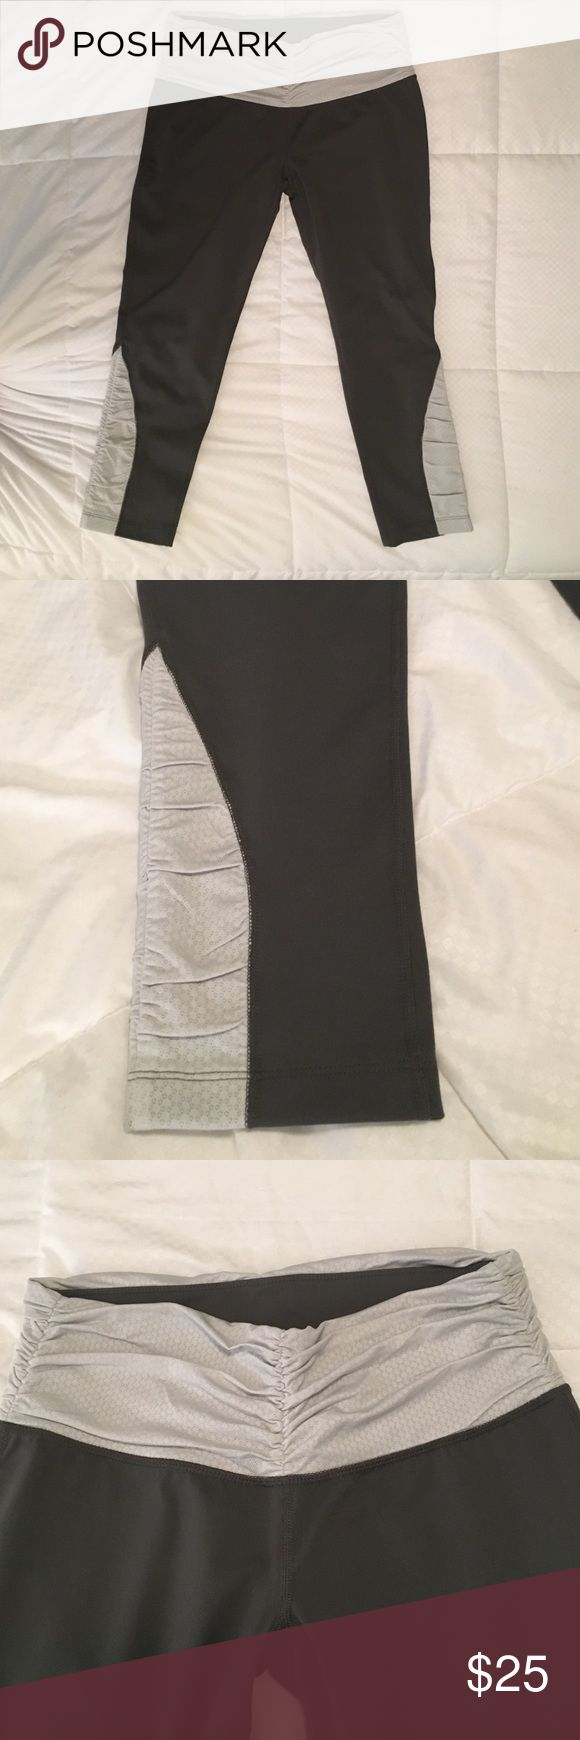 """Patagonia cropped leggings Size Small Patagonia cropped leggings size small. 84% nylon, 16% spandex. Grey with silver detail on waist and legs. Inseam 20"""". Never worn. Great condition! Patagonia Pants Leggings"""